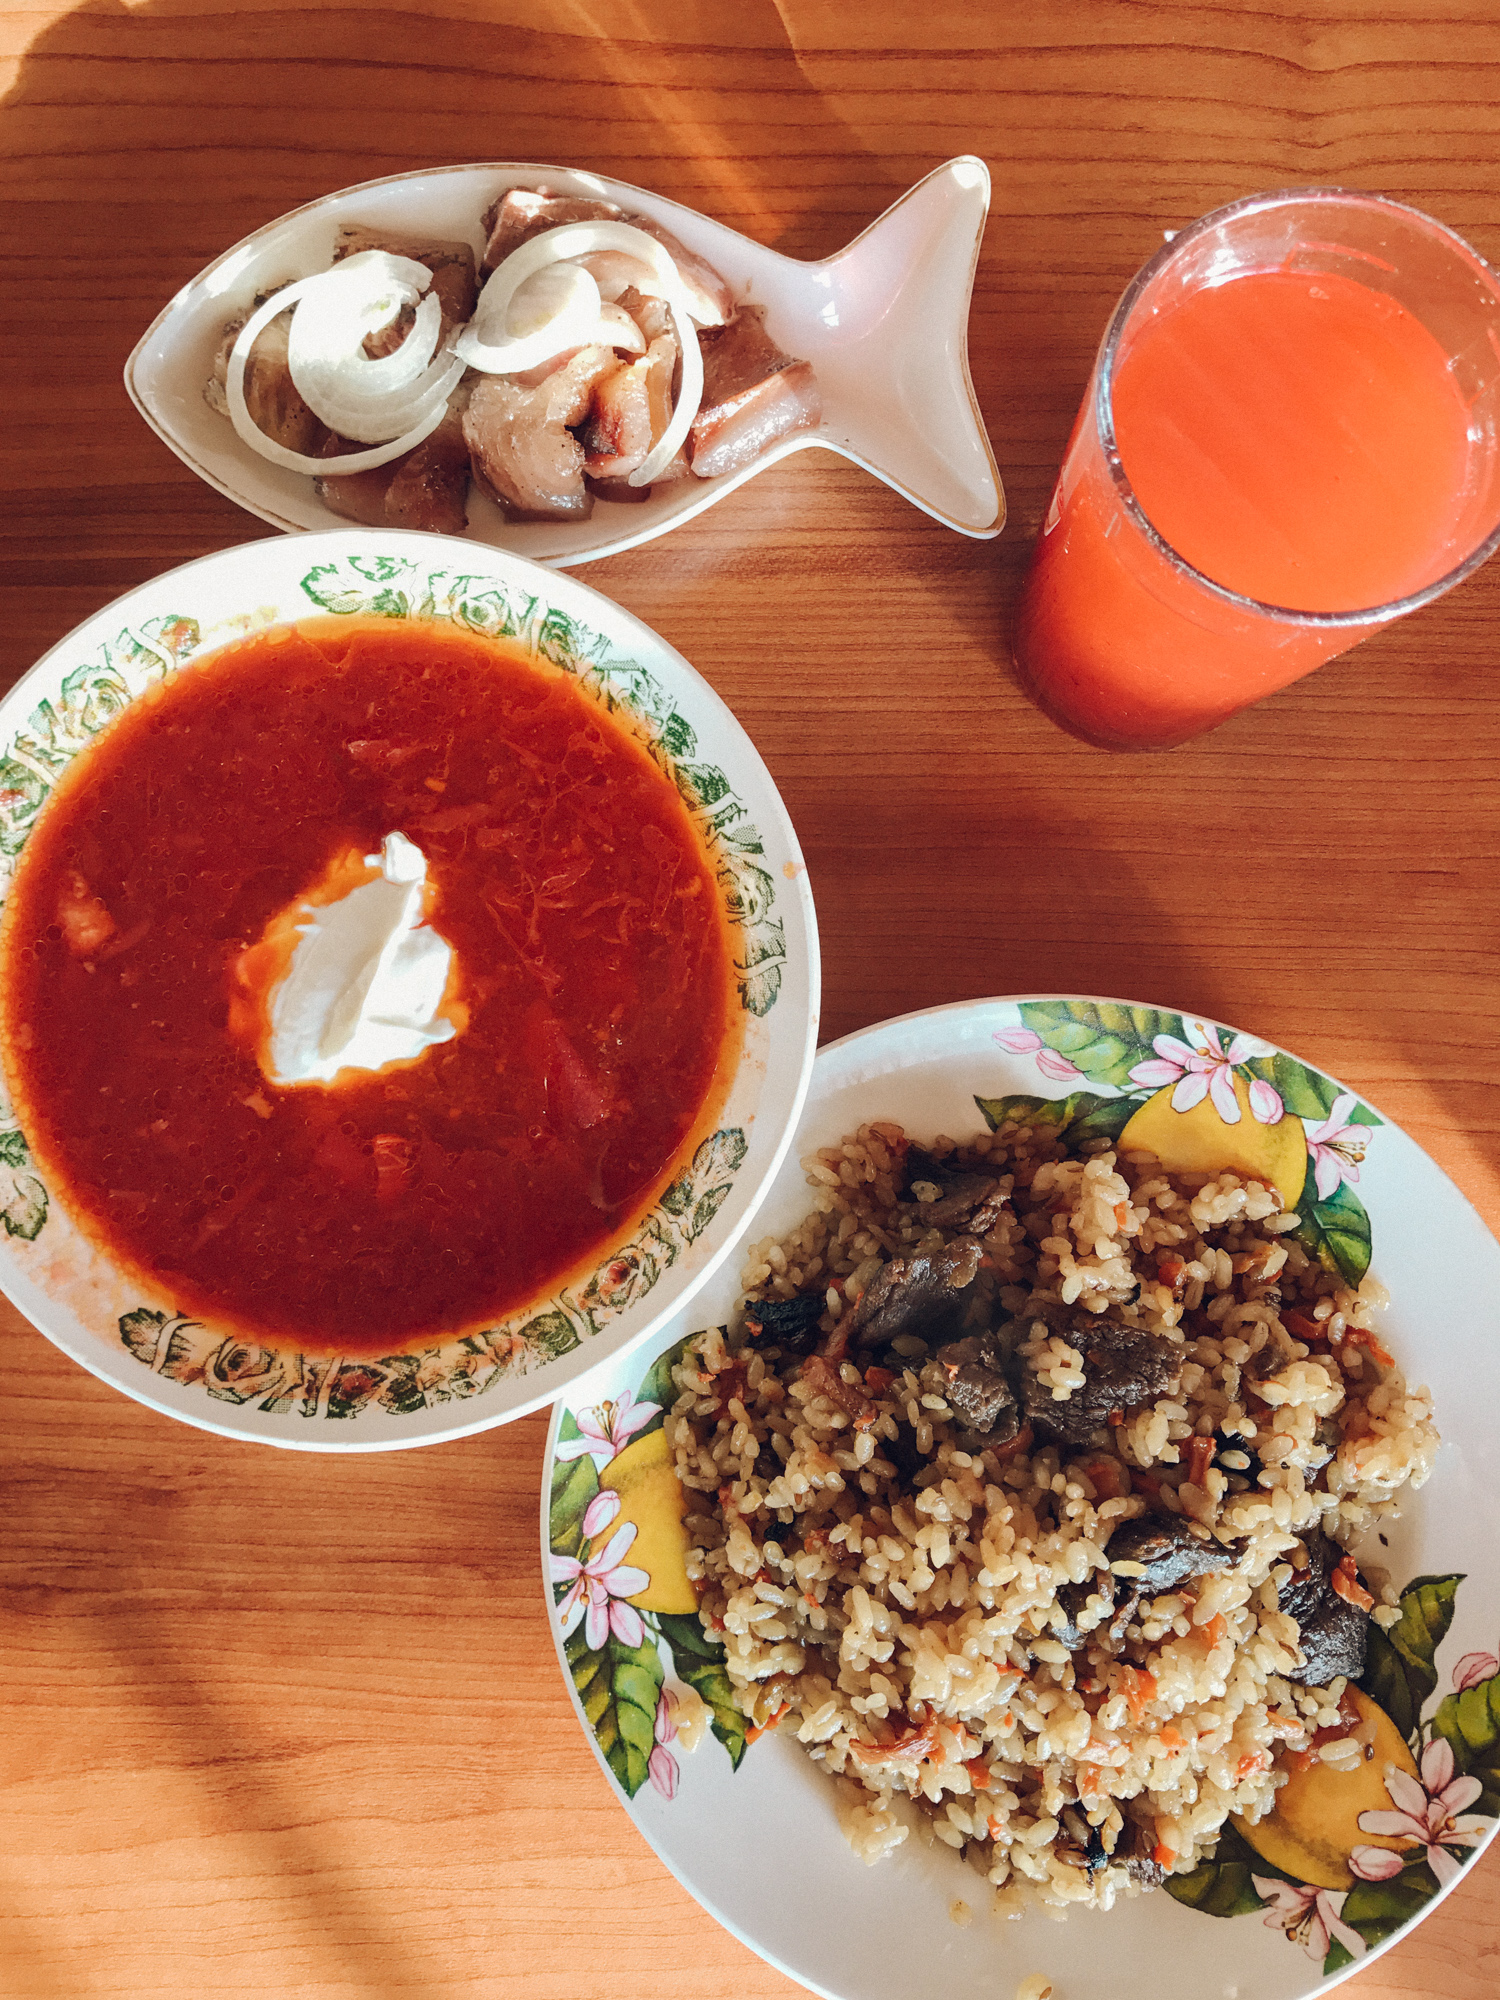 Siberian lunch; borsch, plov (pilaf), local Lake Baikal smoked fish, and soup dumplings -